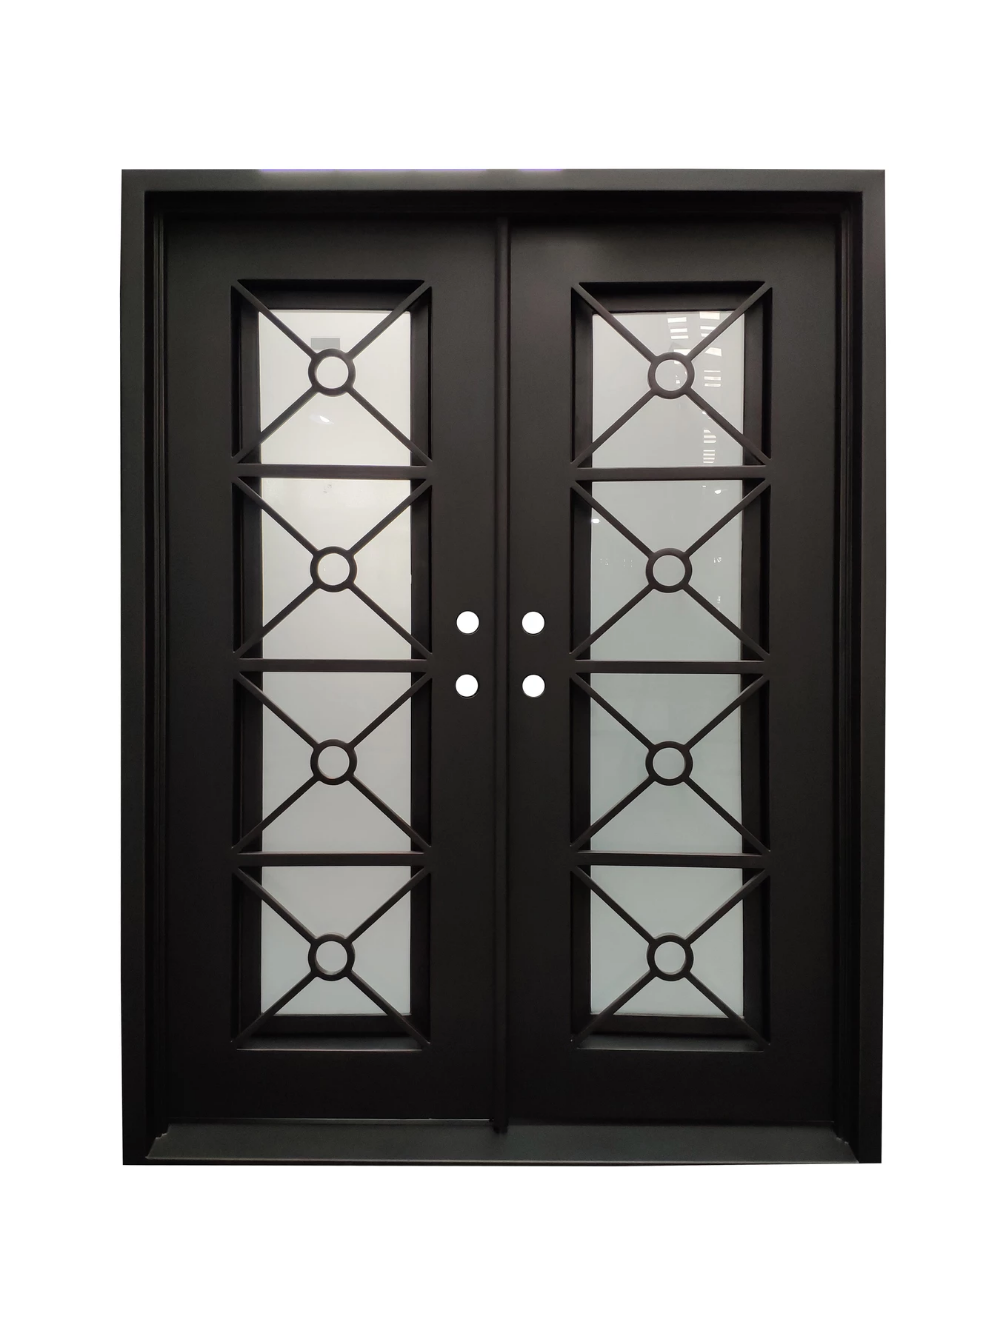 Beverly Hills Double Front Entry Wrought Iron Door Frosted Glass 61.5 x 81.5 #doublefrontentrydoors